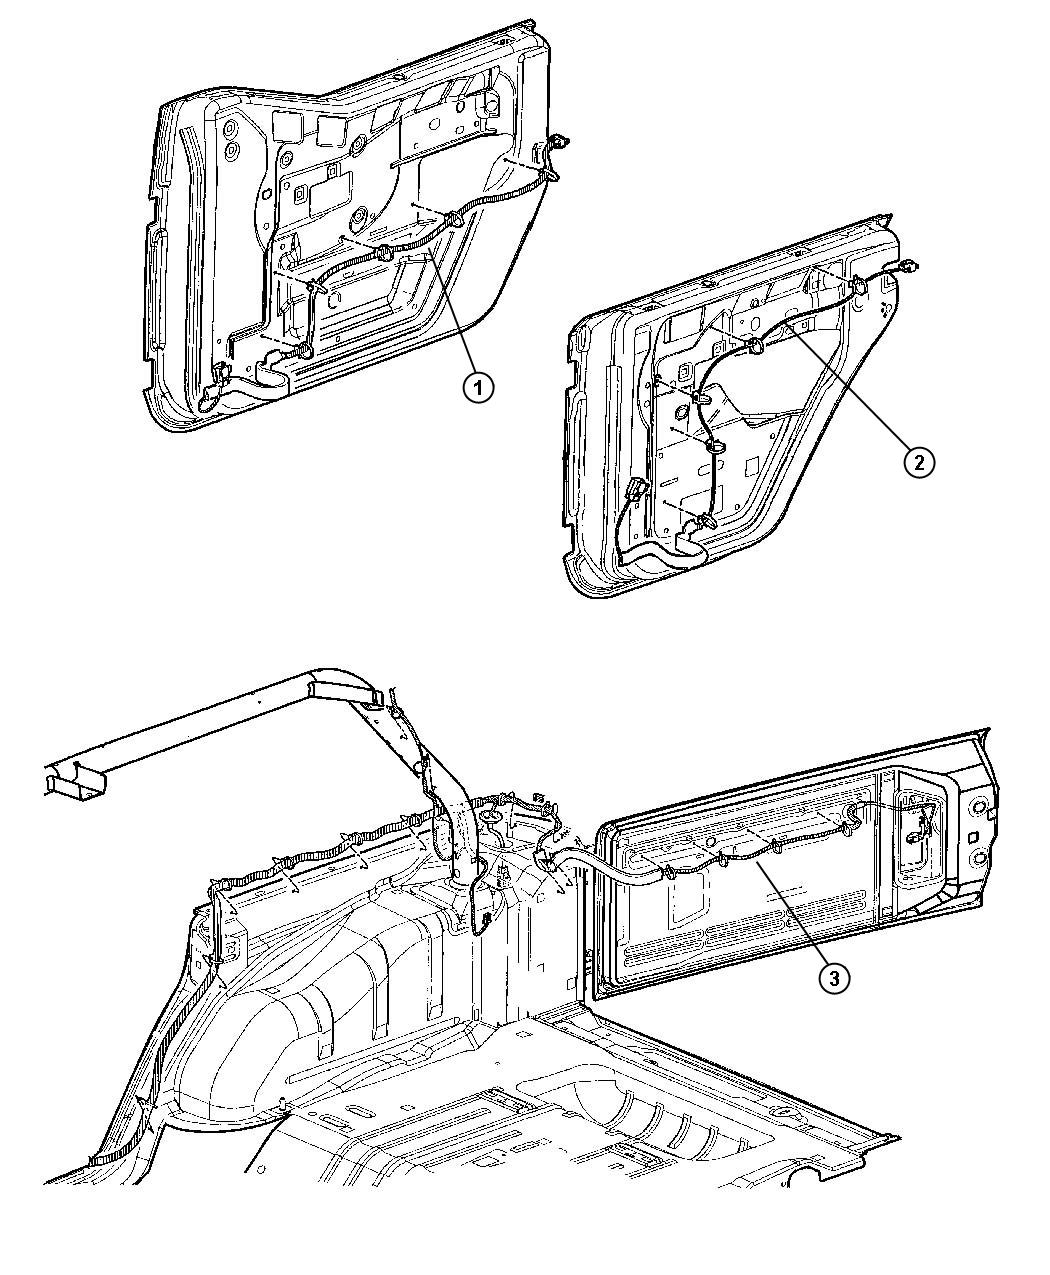 2011 jeep wrangler mirrors with Showassembly on Mazda 5 Radio Wire Diagram as well P 0996b43f802c5368 likewise Jeep Wrangler Tops Doors Window Kits C 25 28 57 439 moreover Jeep Liberty vs Subaru Forester moreover 2011 Nissan Versa Wiring Diagram High Beam Headlight.